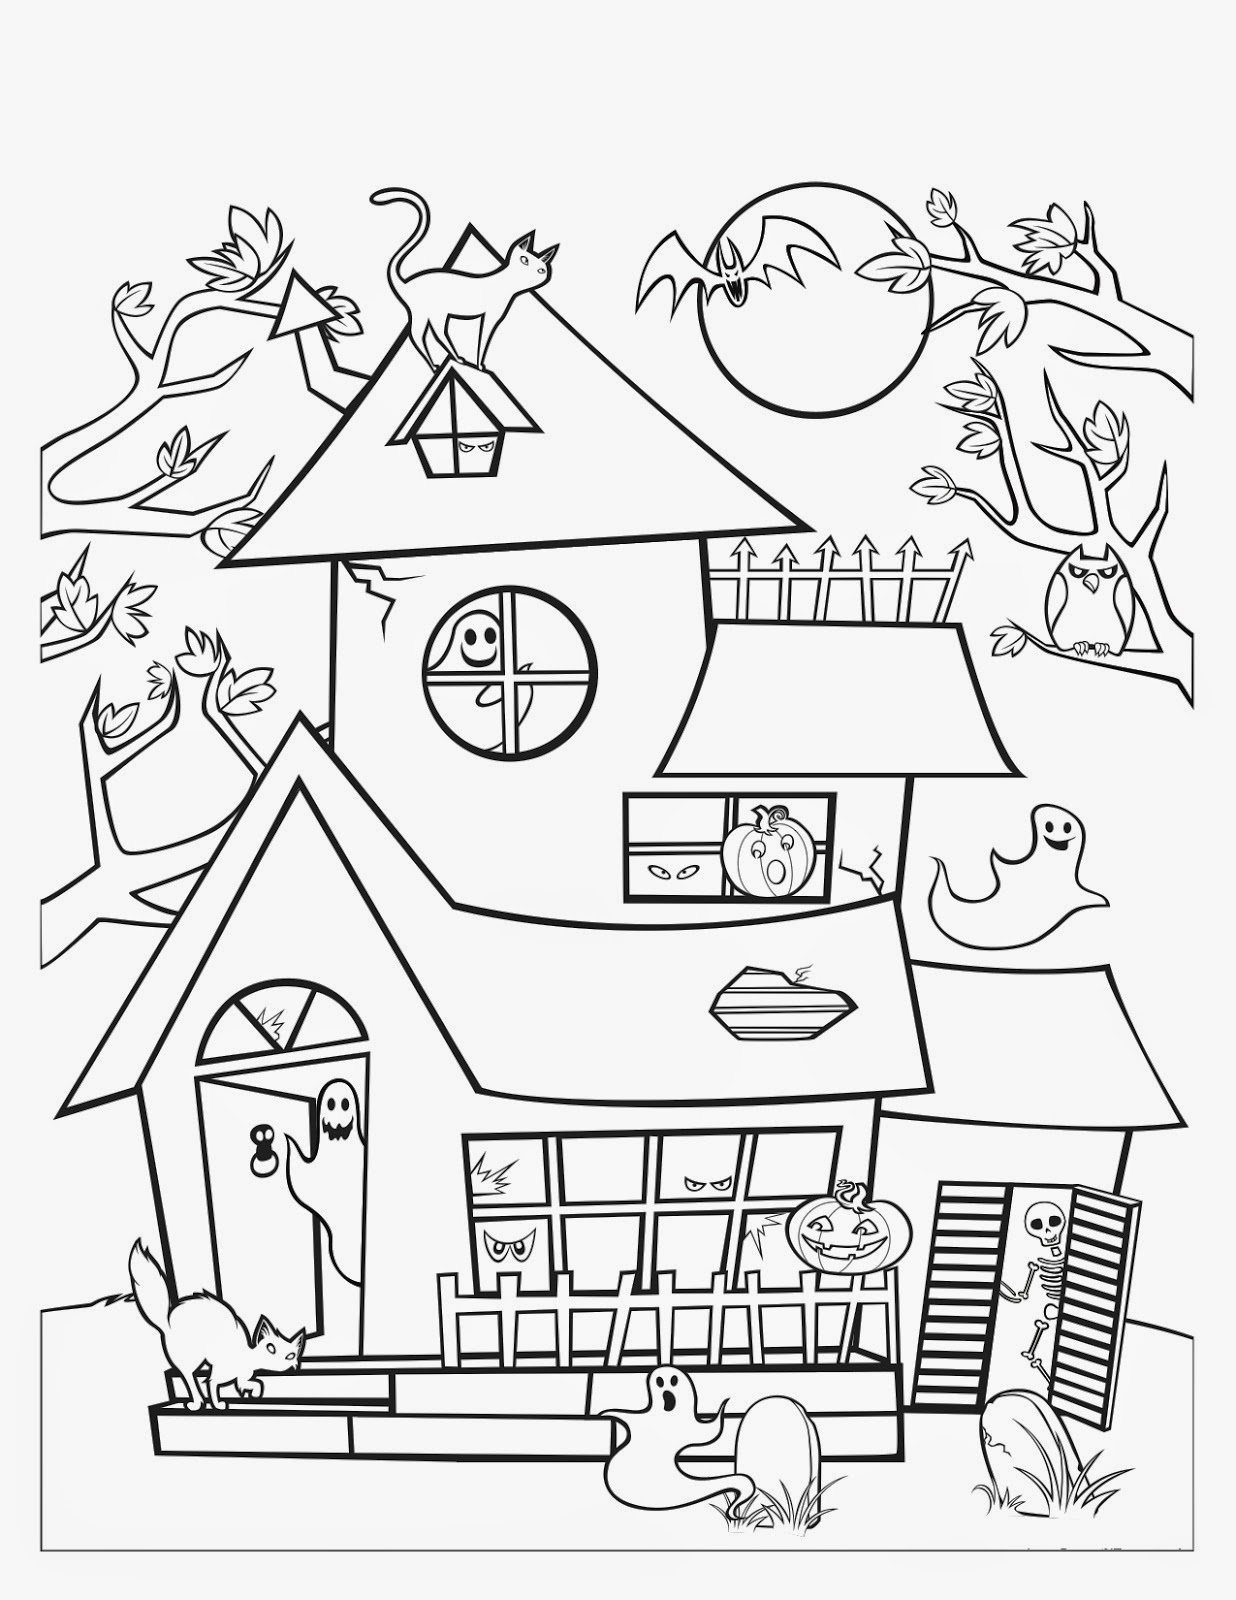 1236x1600 House Drawing Colour Free Purifying Well Water Diagram